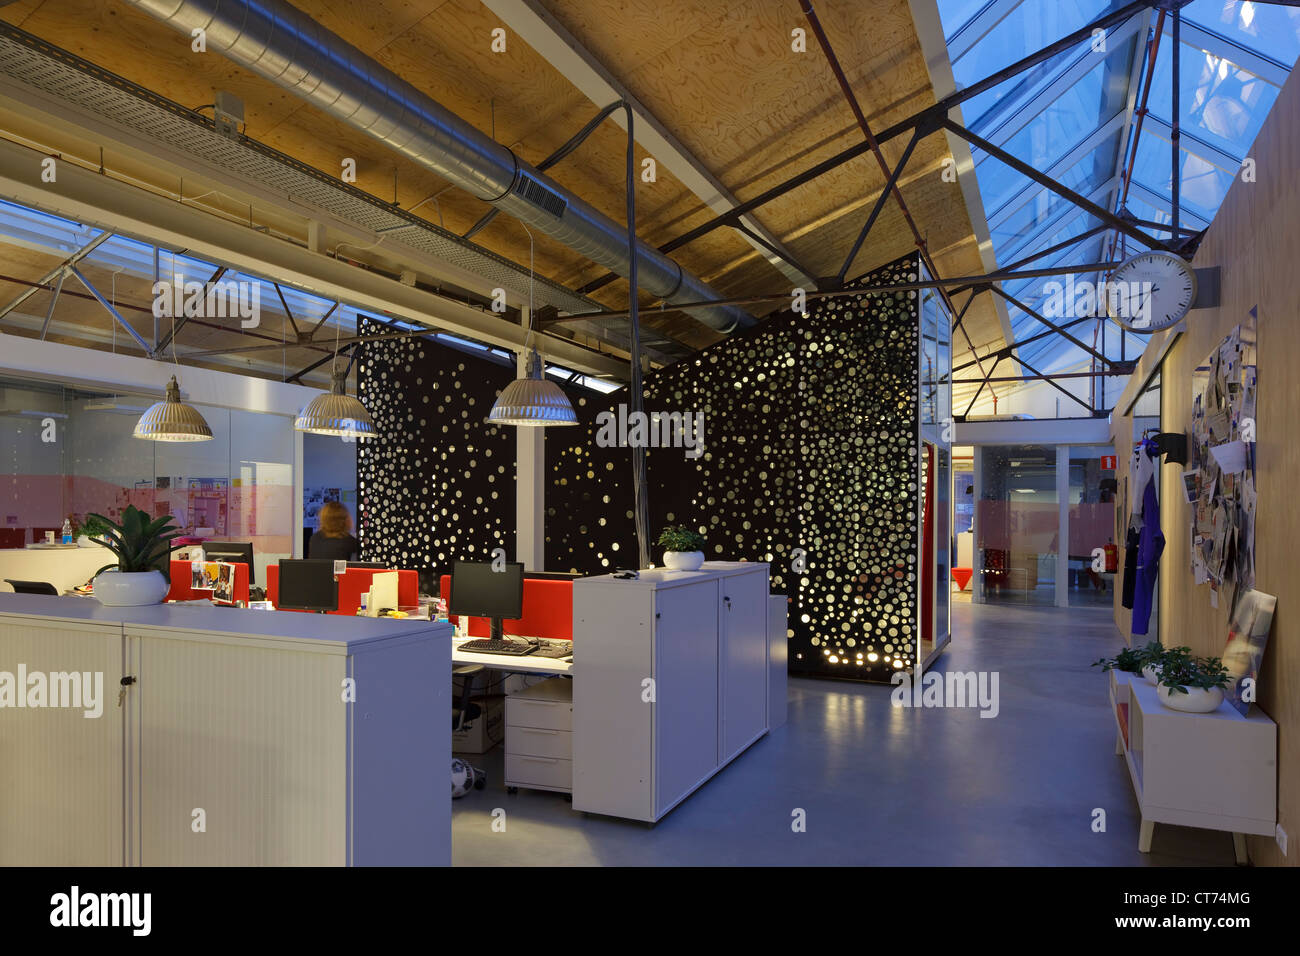 redbull head office interior. Red Bull Nederland Headquarters, Amsterdam, Netherlands. Architect: Sid Lee Architecture, 2011. Office Area In Early Morning, Wi Redbull Head Interior